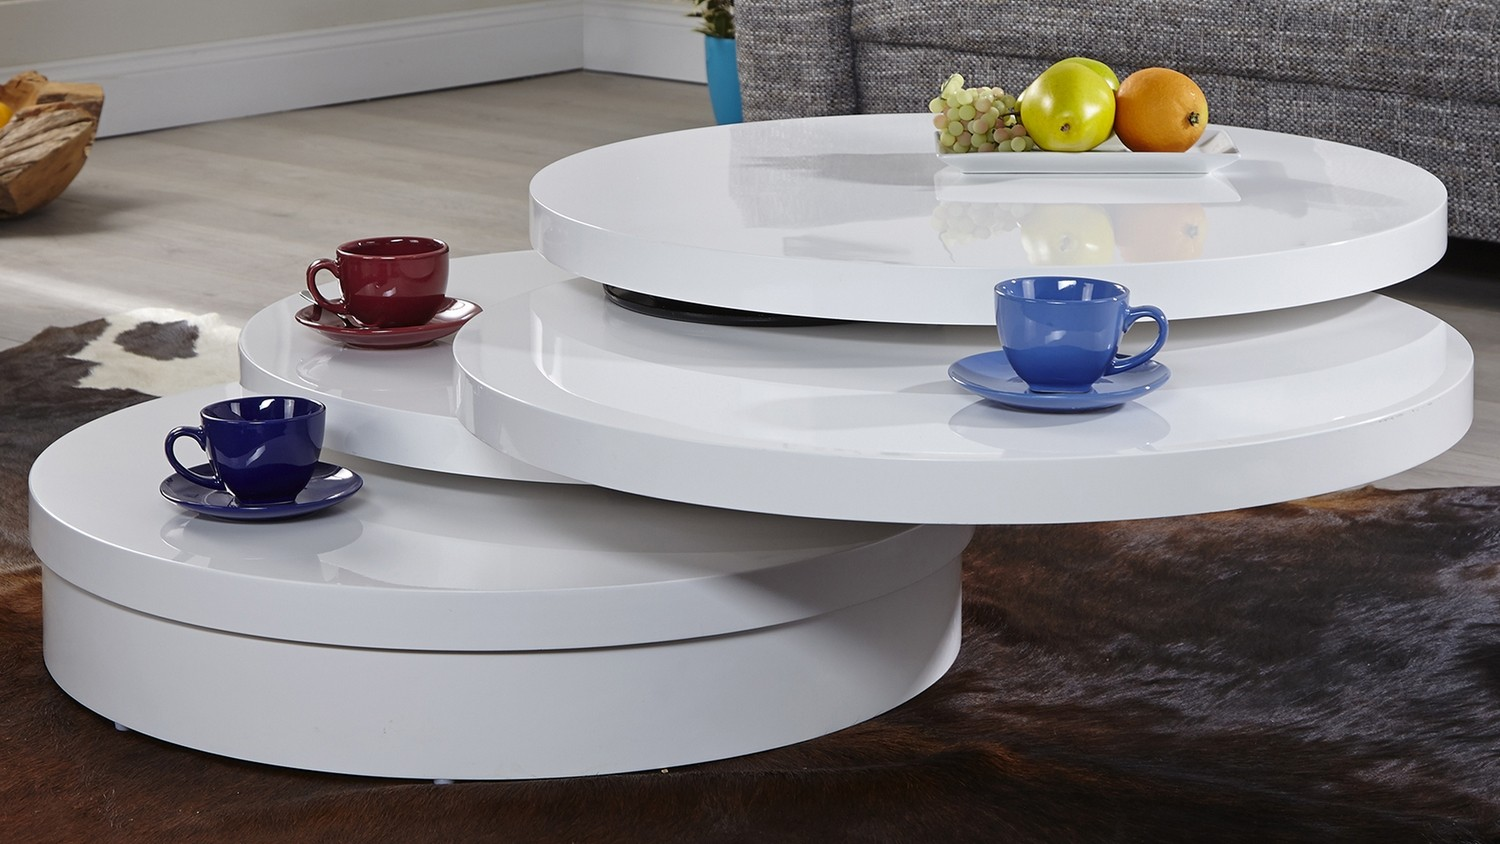 Table basse blanche ronde 3 plateaux modulables Urb - GdeGdesign